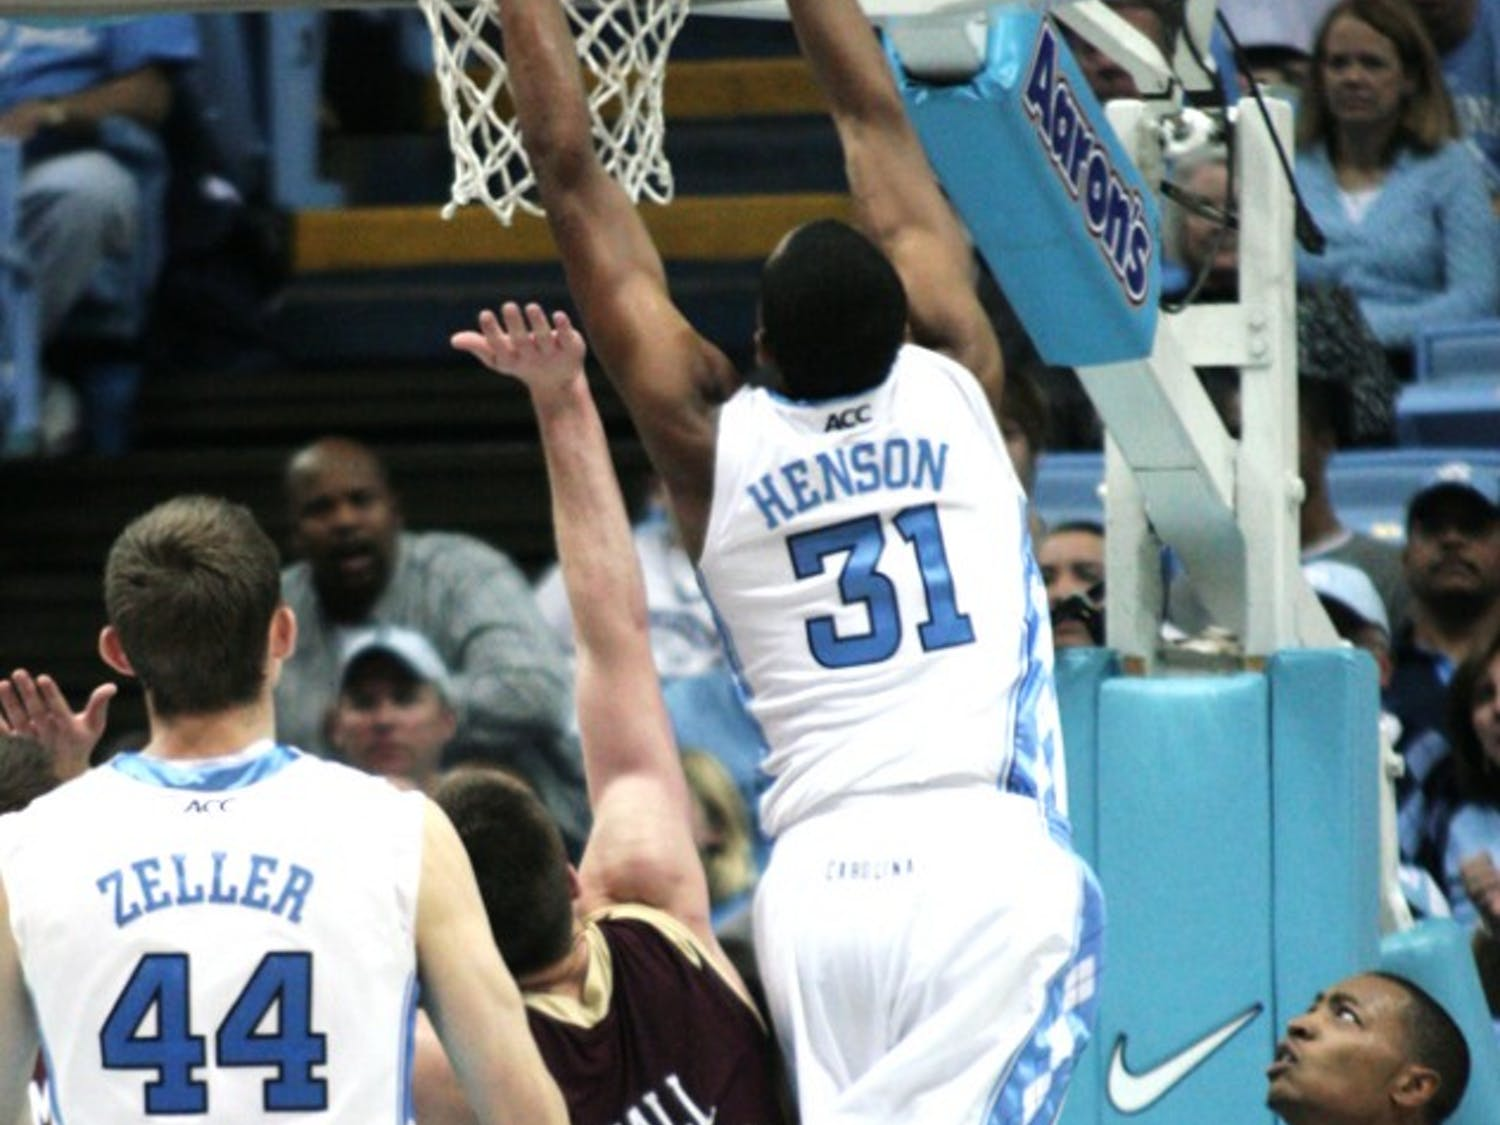 North Carolina's John Henson goes up for a block against Charleston. The Tar Heels have won four consecutive ACC/Big Ten Challenge games.